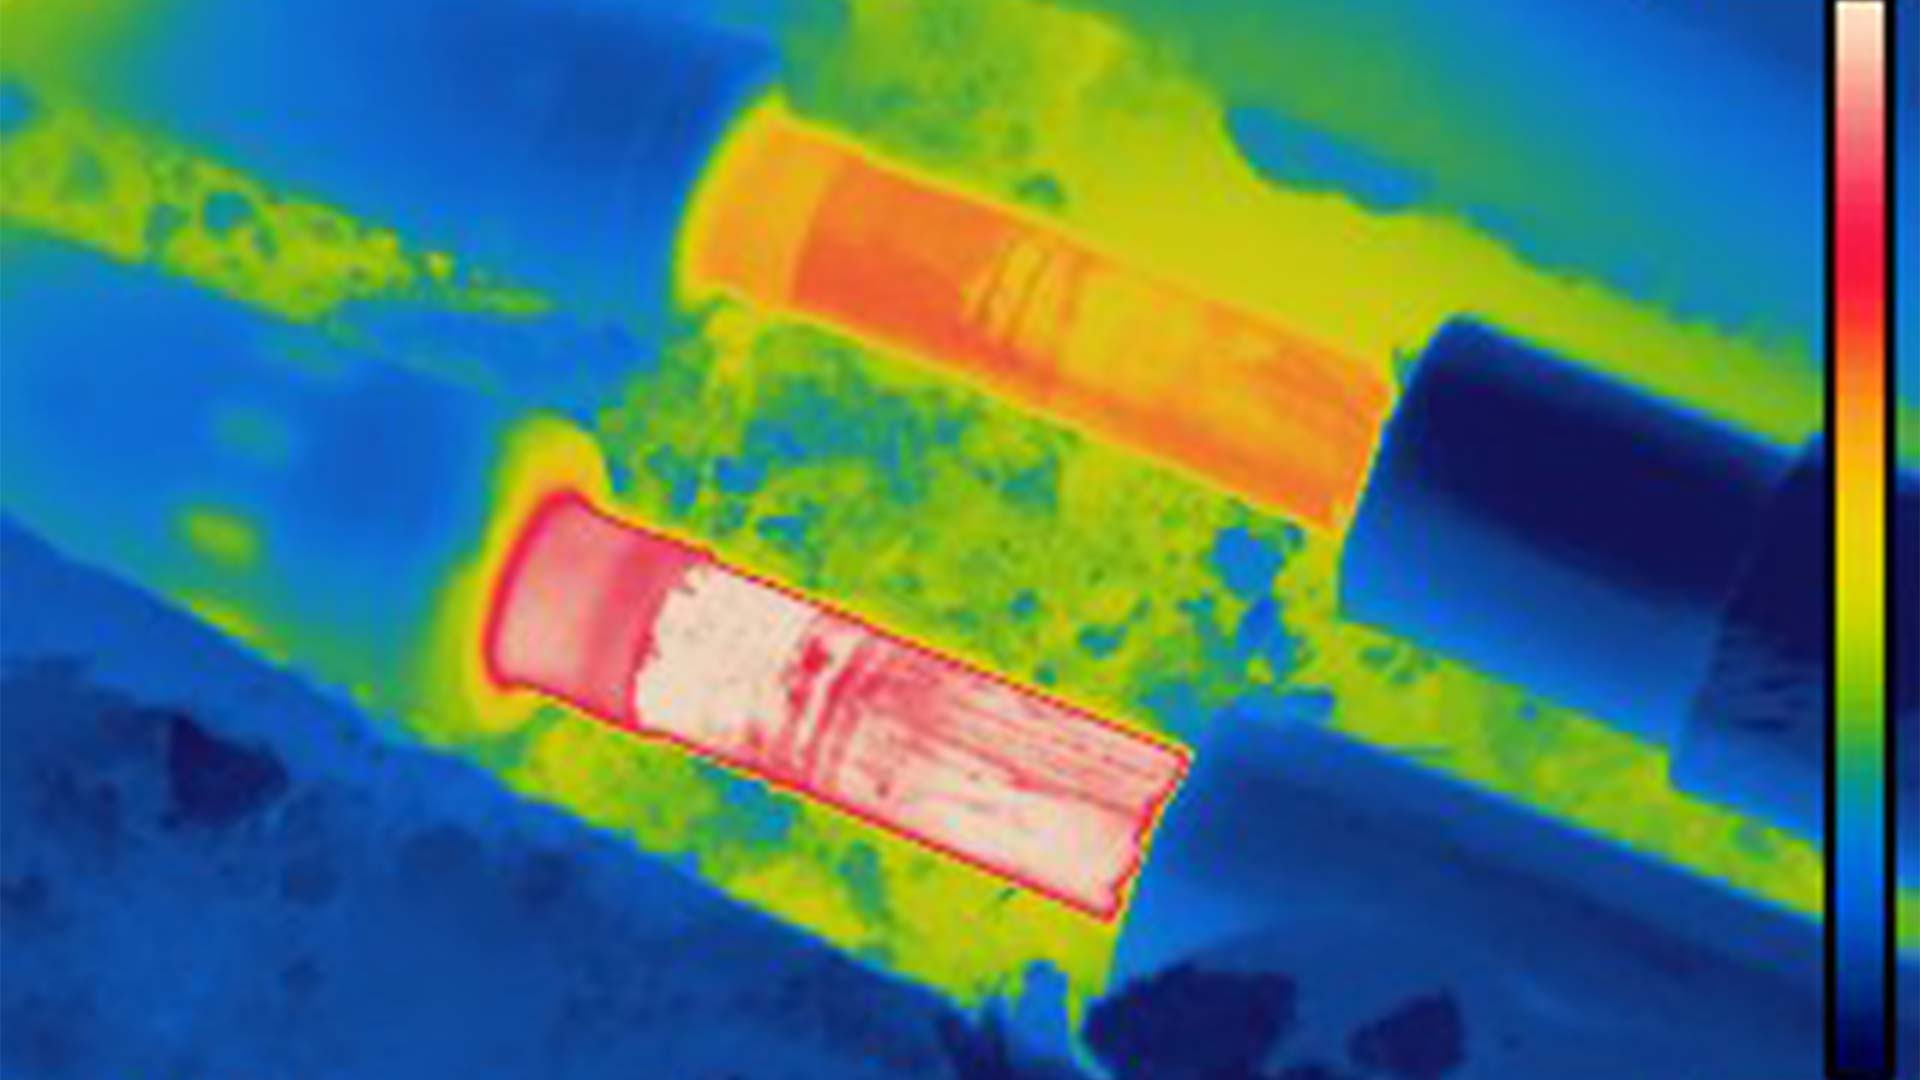 thermal-image-heating-pipes-1920